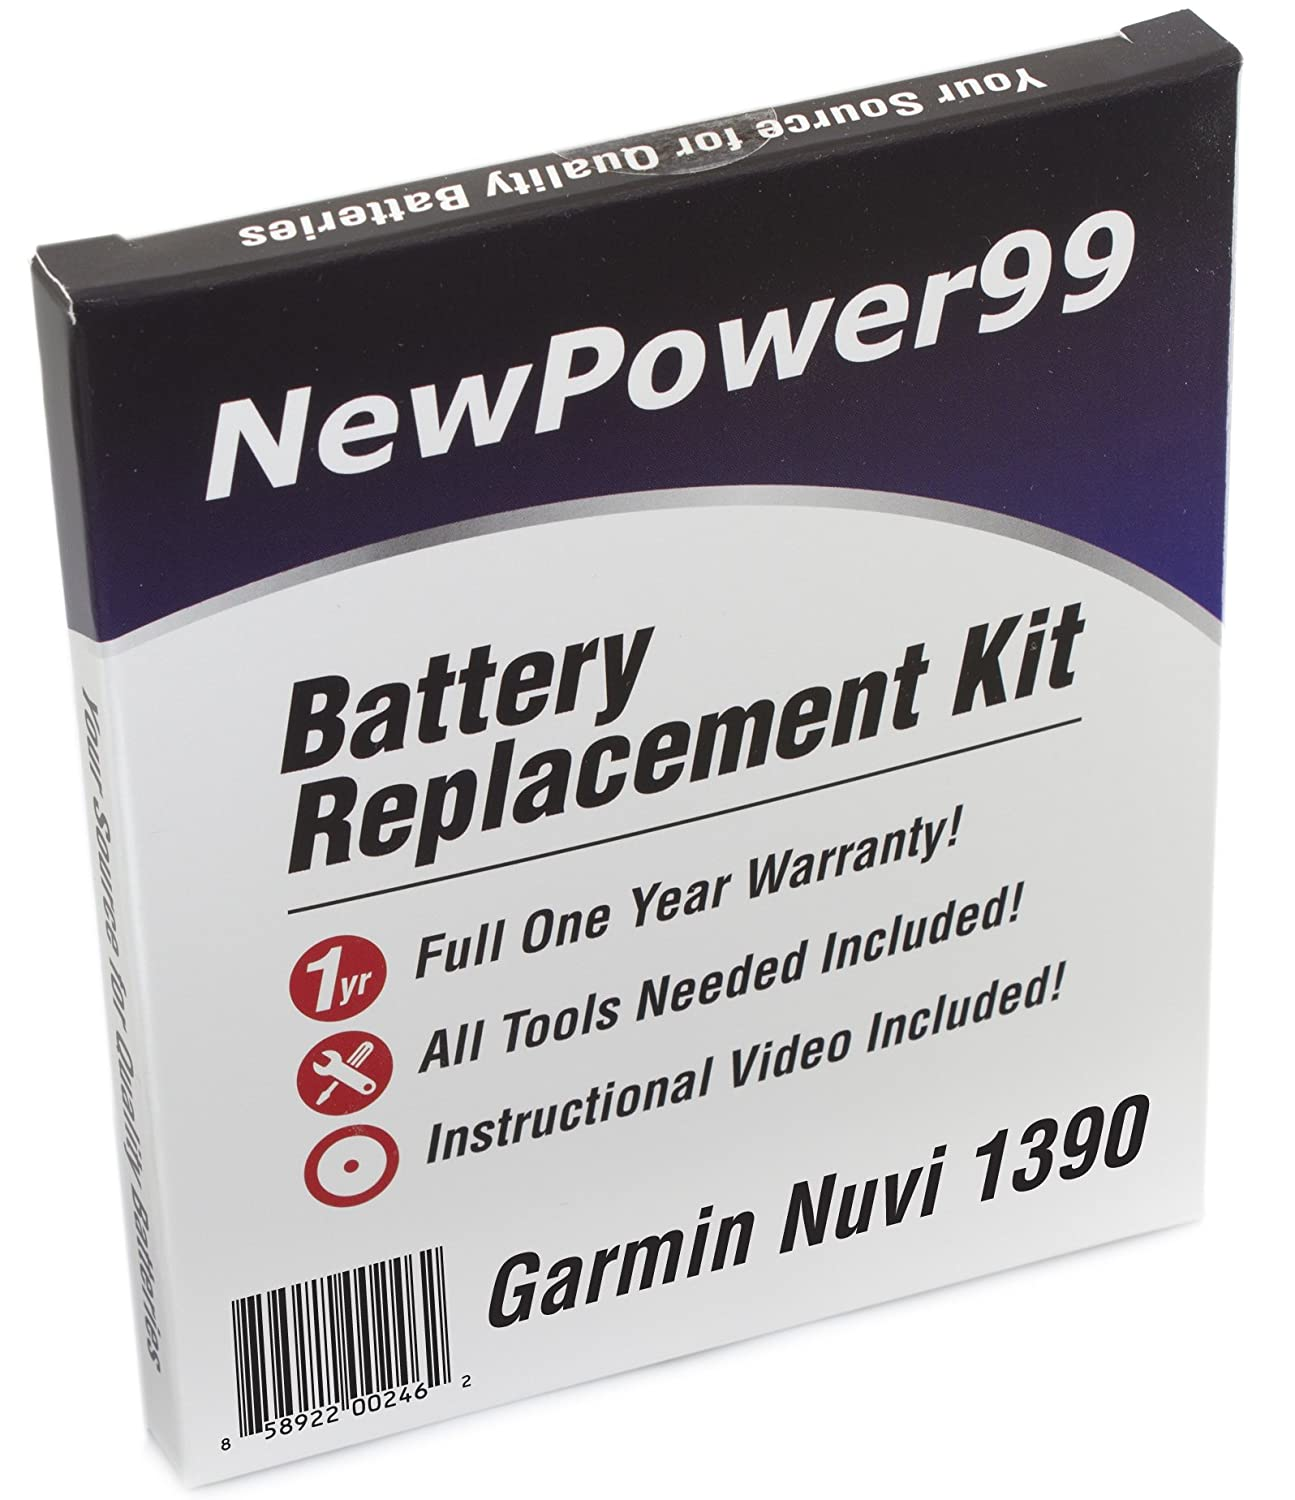 Battery Replacement Kit for Garmin Nuvi 1390 with Installation Video, Tools, and Extended Life Battery. NewPower99